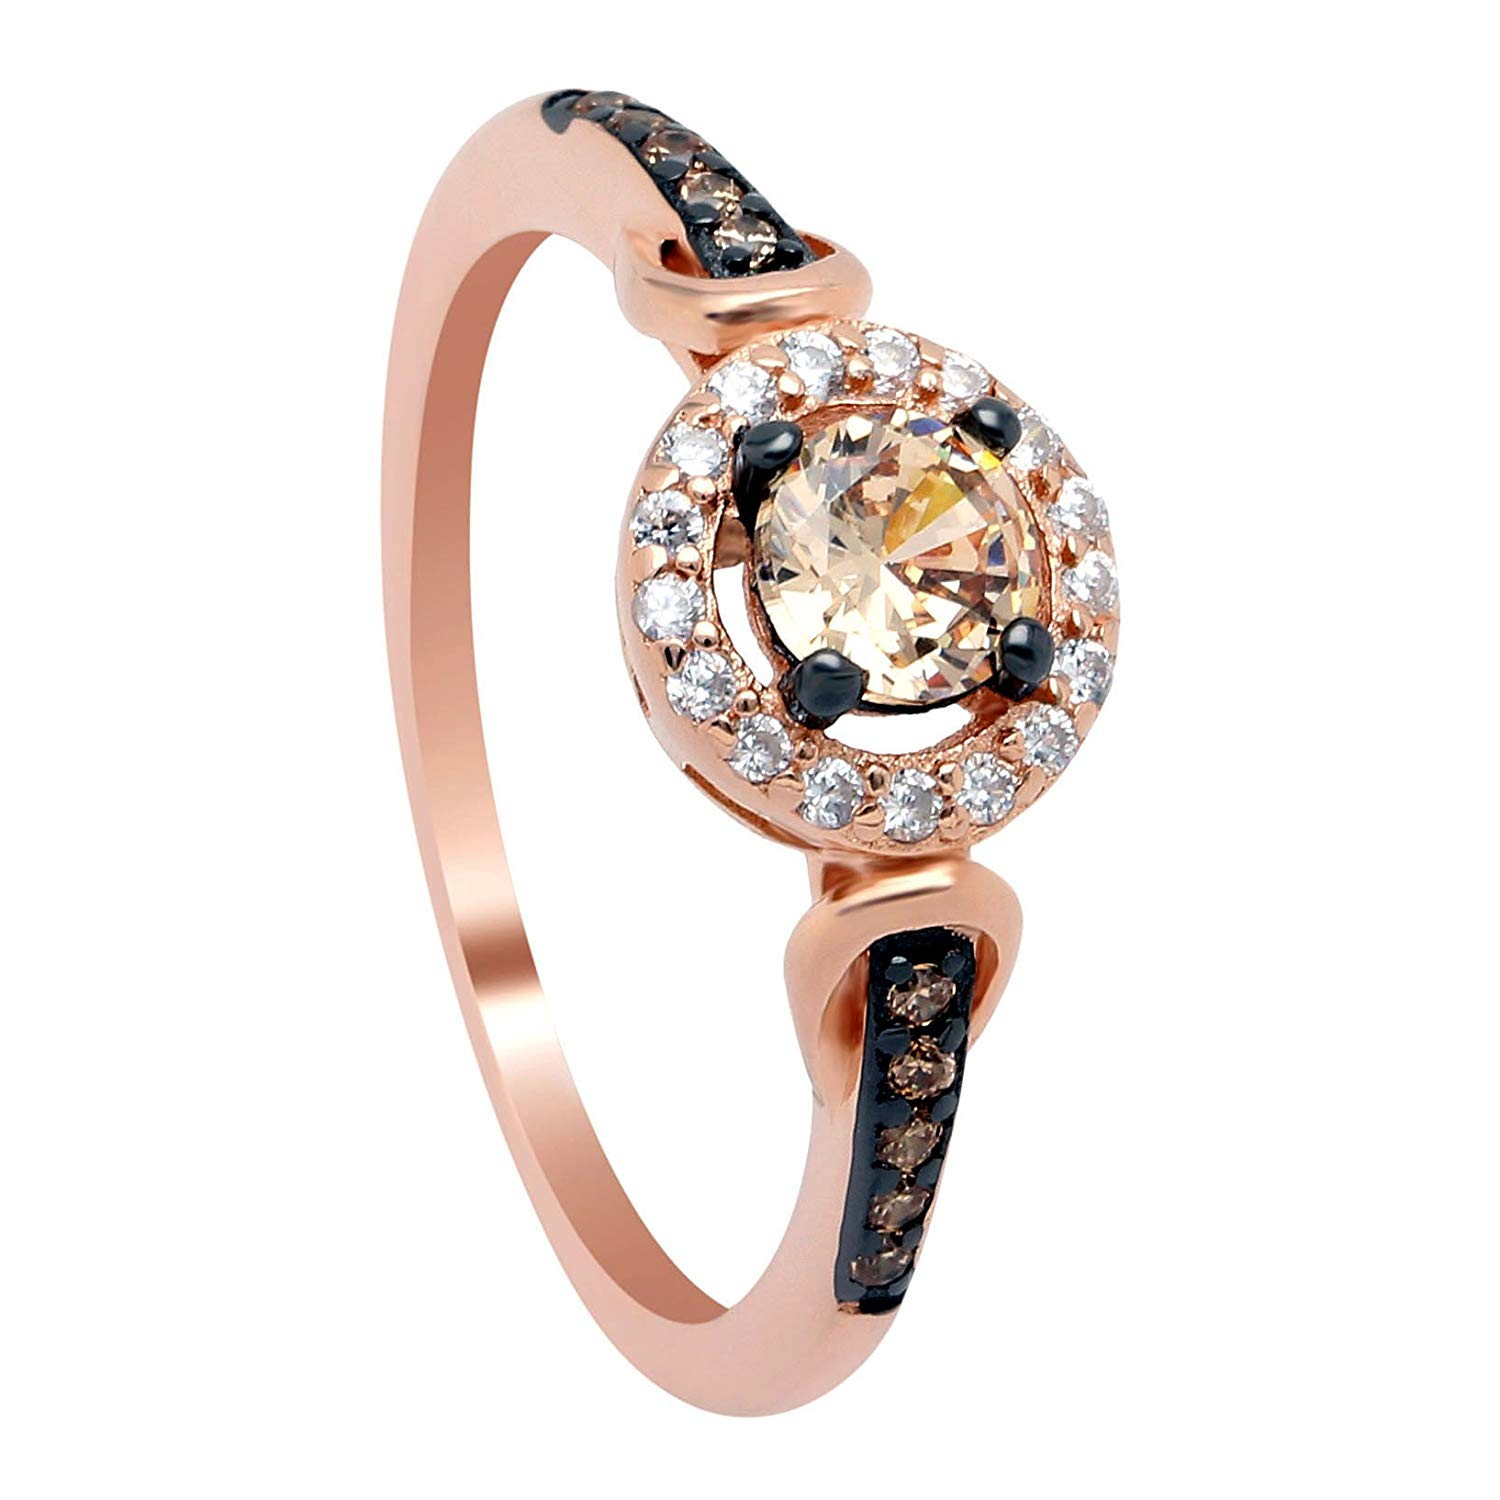 Tanisha Beautiful Chocolate and Champagne Briadal Ring Rose Gold over 925 Sterling Silver - Ginger Lyne Collection